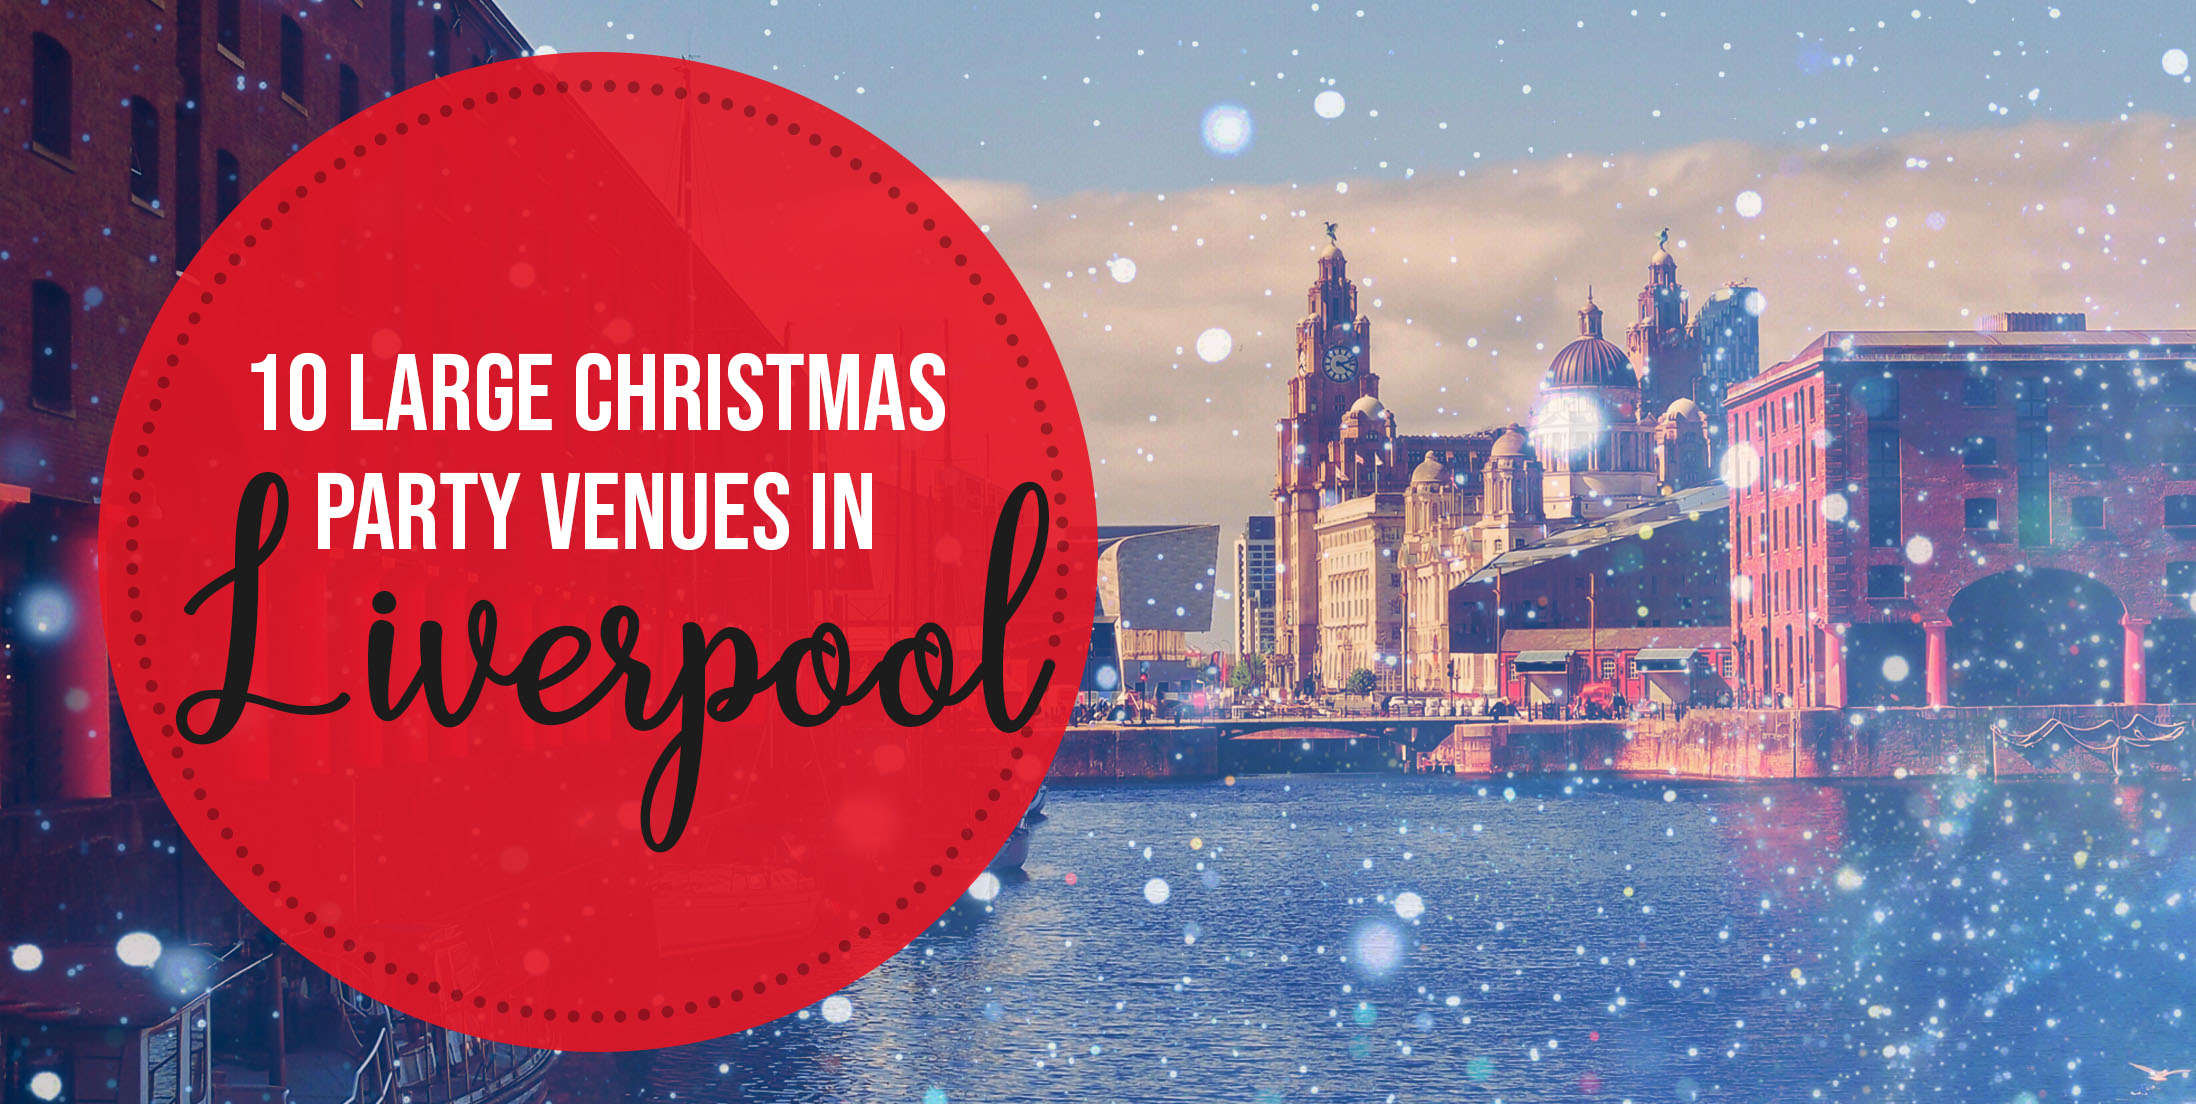 10 Large Christmas Party Venues in Liverpool